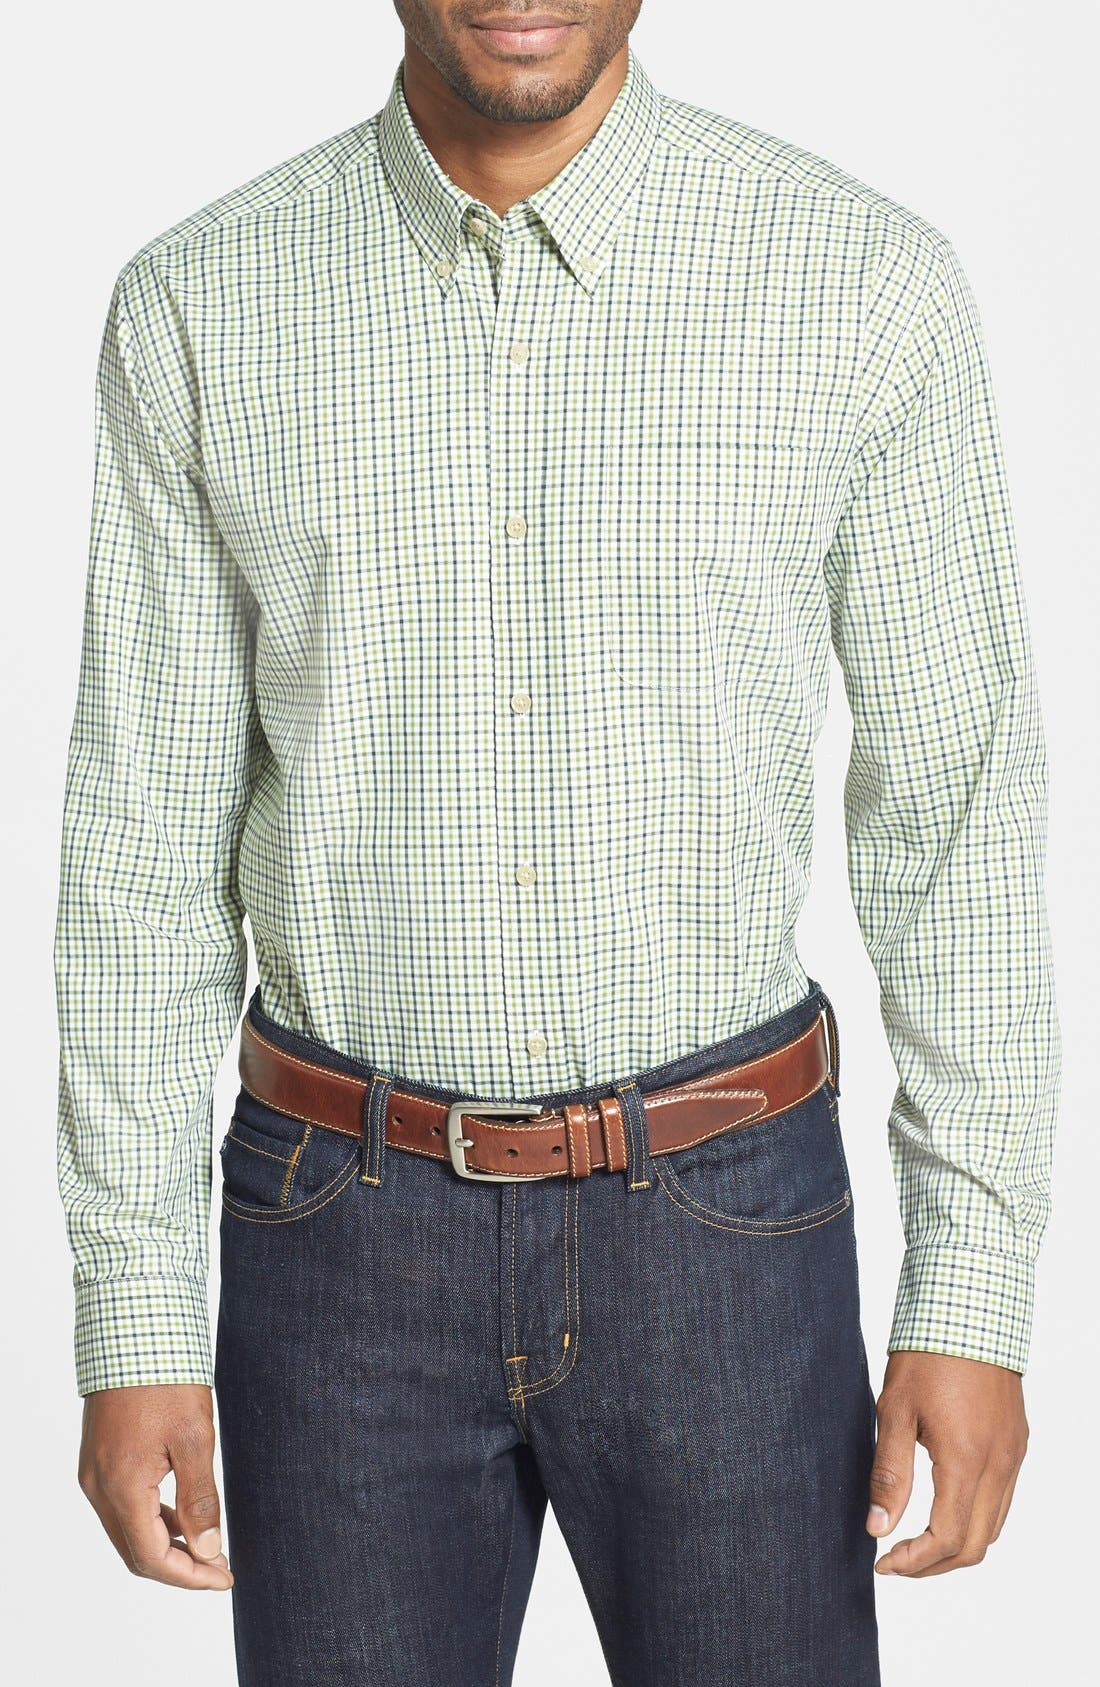 Alternate Image 1 Selected - Cutter & Buck 'Isley' Classic Fit Check Twill Sport Shirt (Big & Tall)